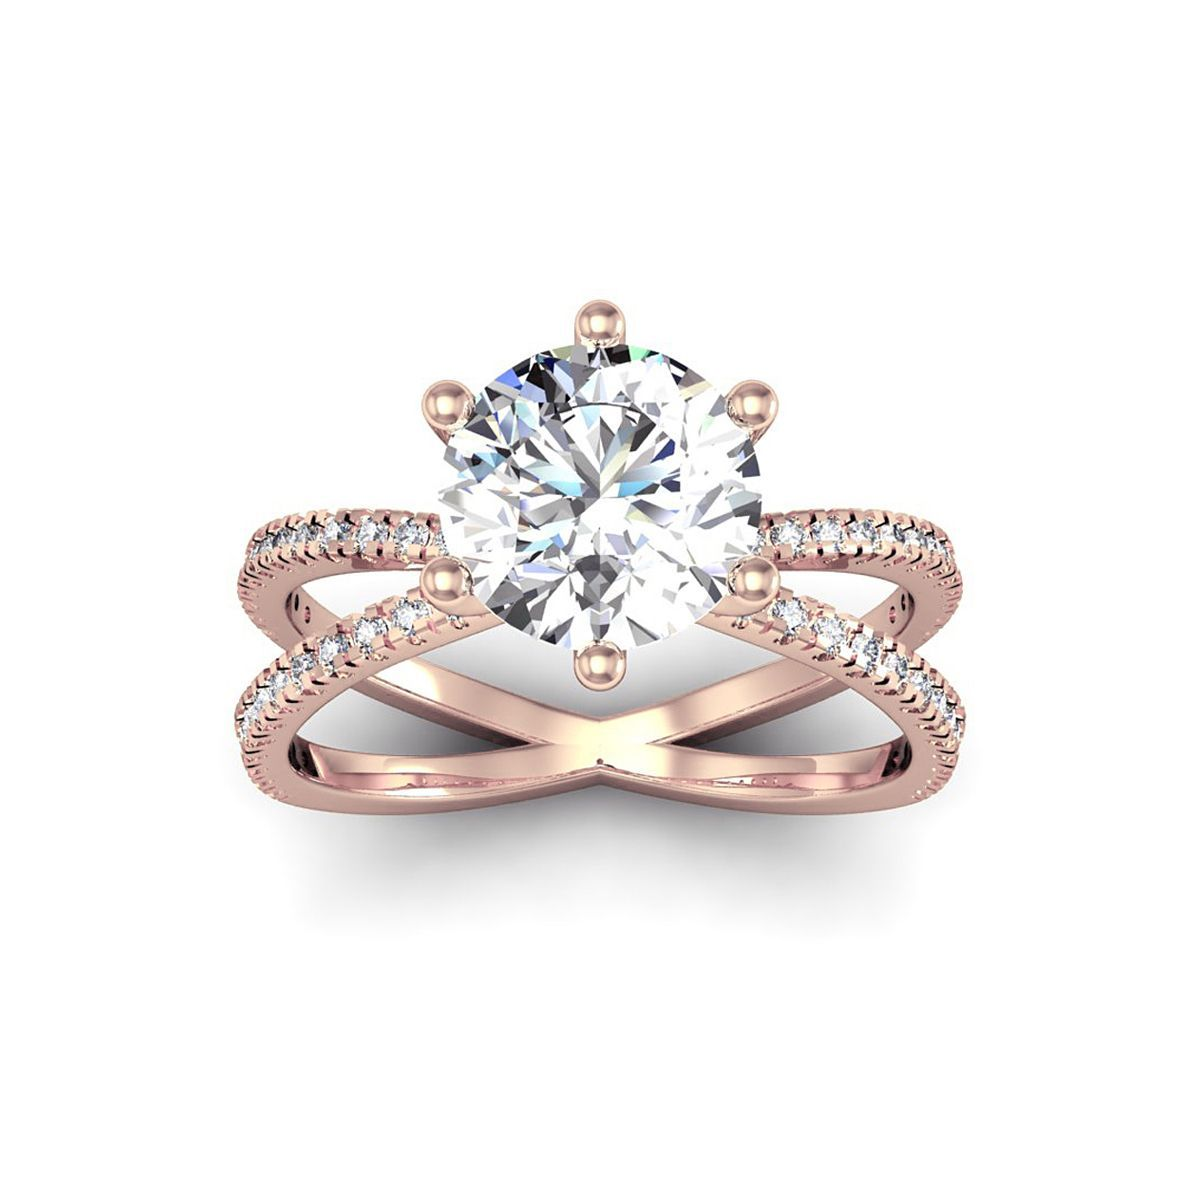 Modern X Band 2 25 Carat Solitaire Engagement Ring With 48 Side Diamonds In 14k Rose Gold